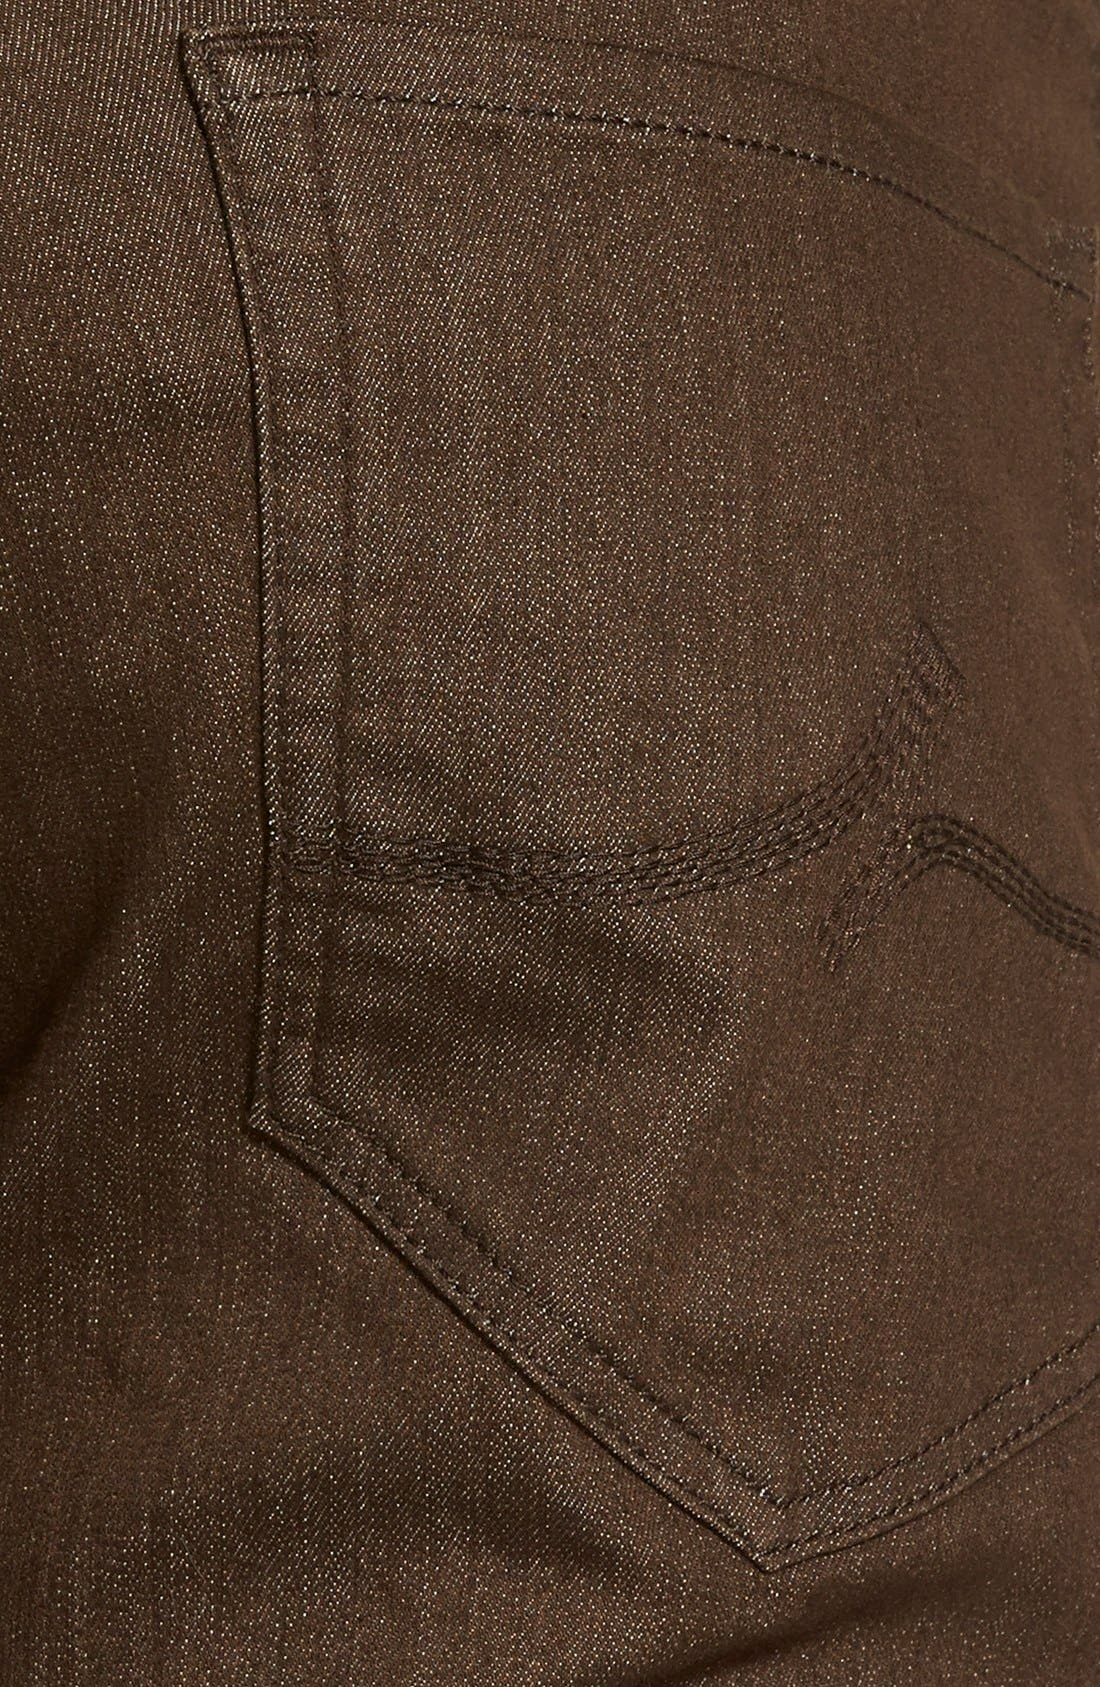 Alternate Image 4  - 34 Heritage 'Charisma' Relaxed Fit Jeans (Brown Comfort) (Regular & Tall)